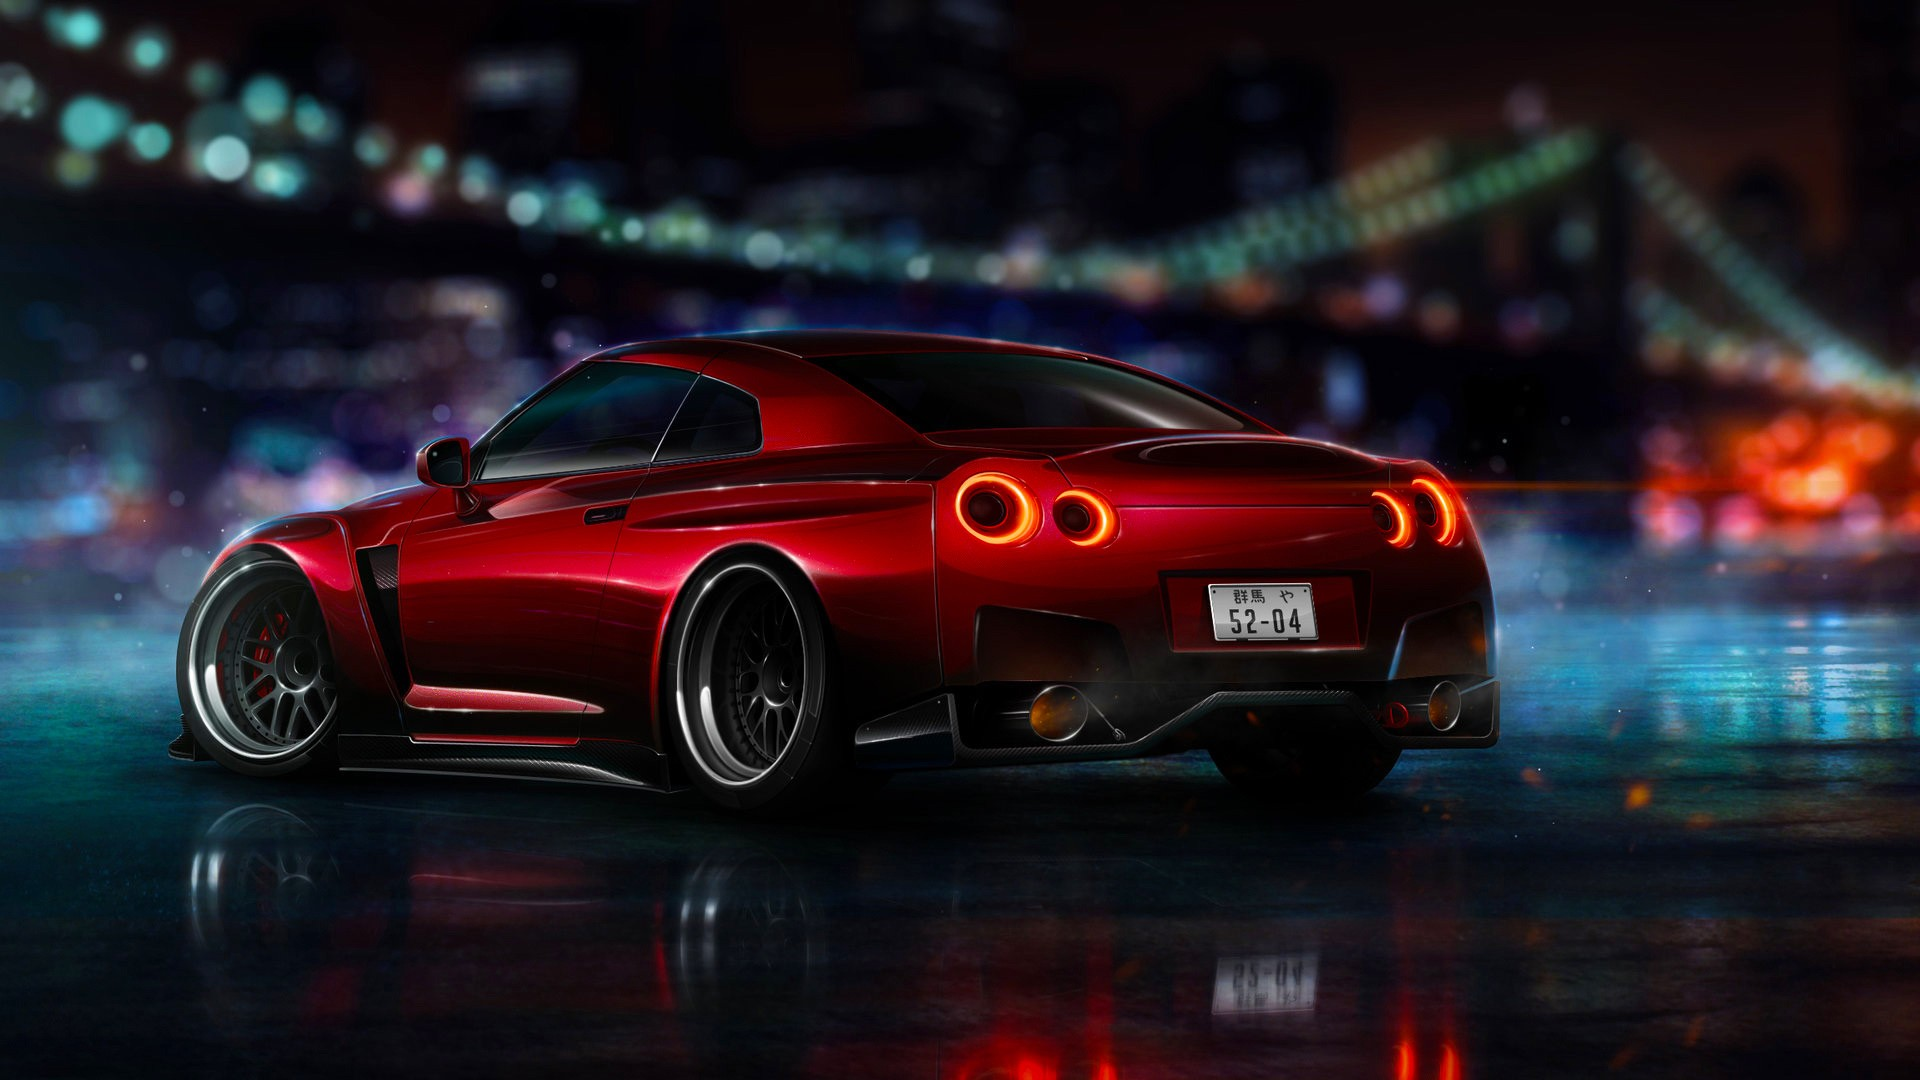 Nissan Skyline Gtr R35 Wallpaper Hd Autos Wallpapers